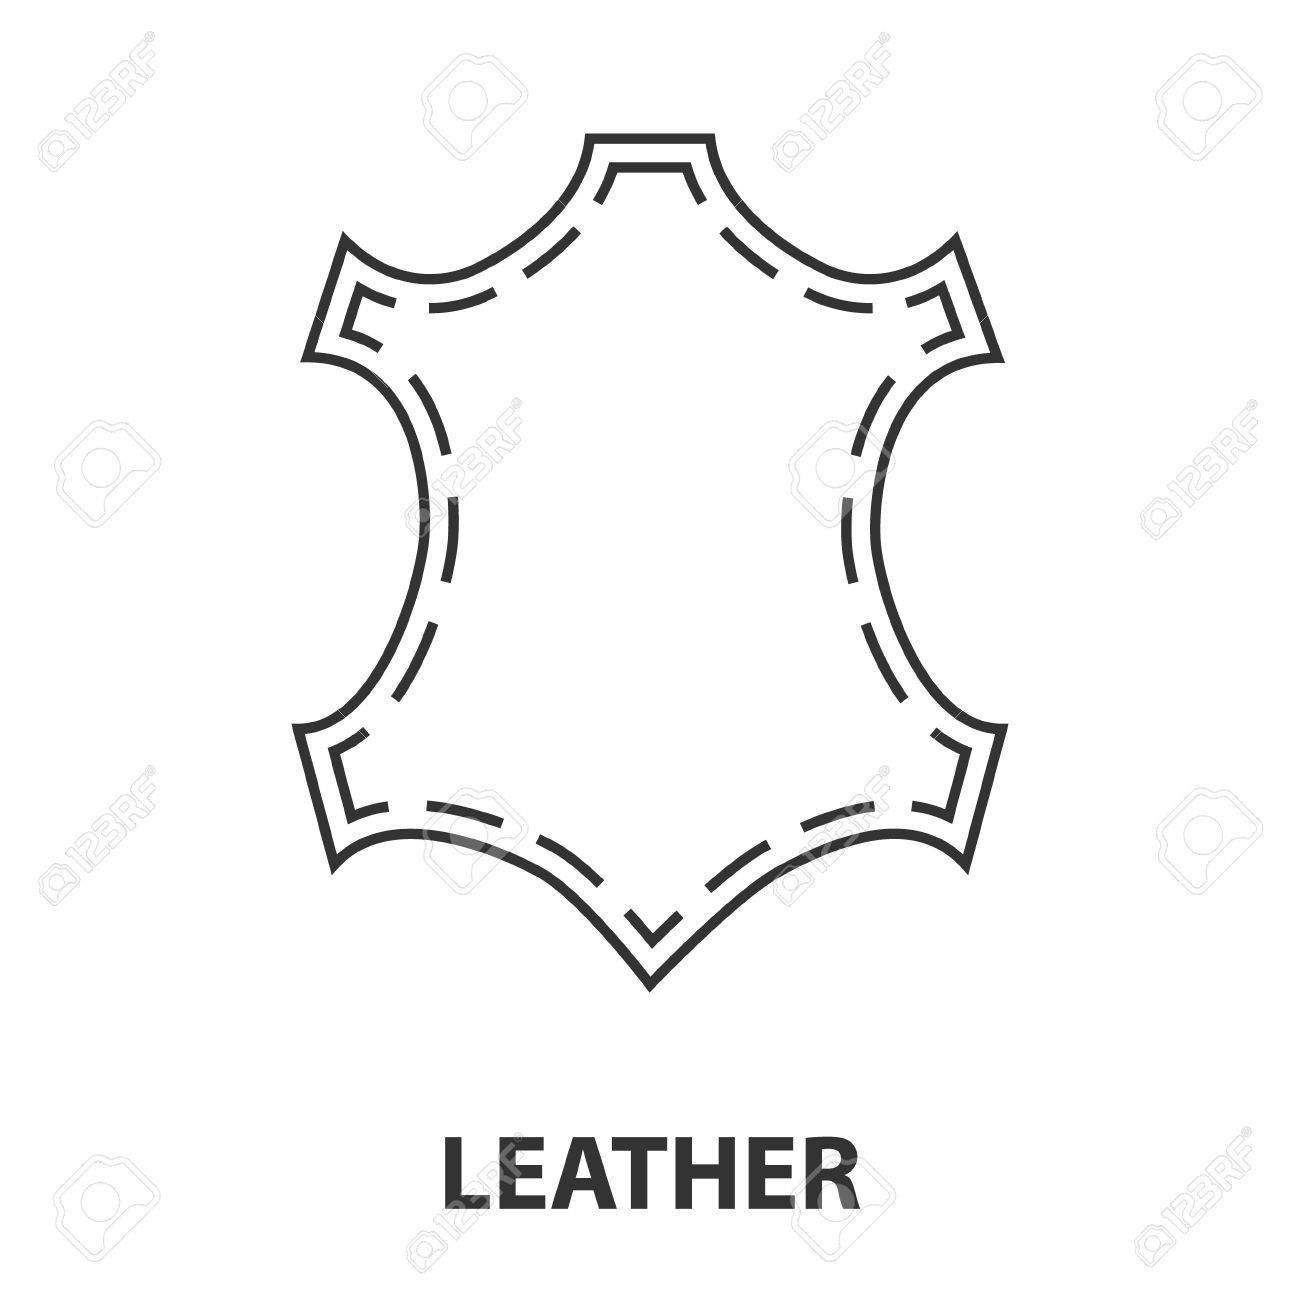 leather icon or logo line art style vector illustration royalty free cliparts vectors and stock illustration image 69423886 leather icon or logo line art style vector illustration